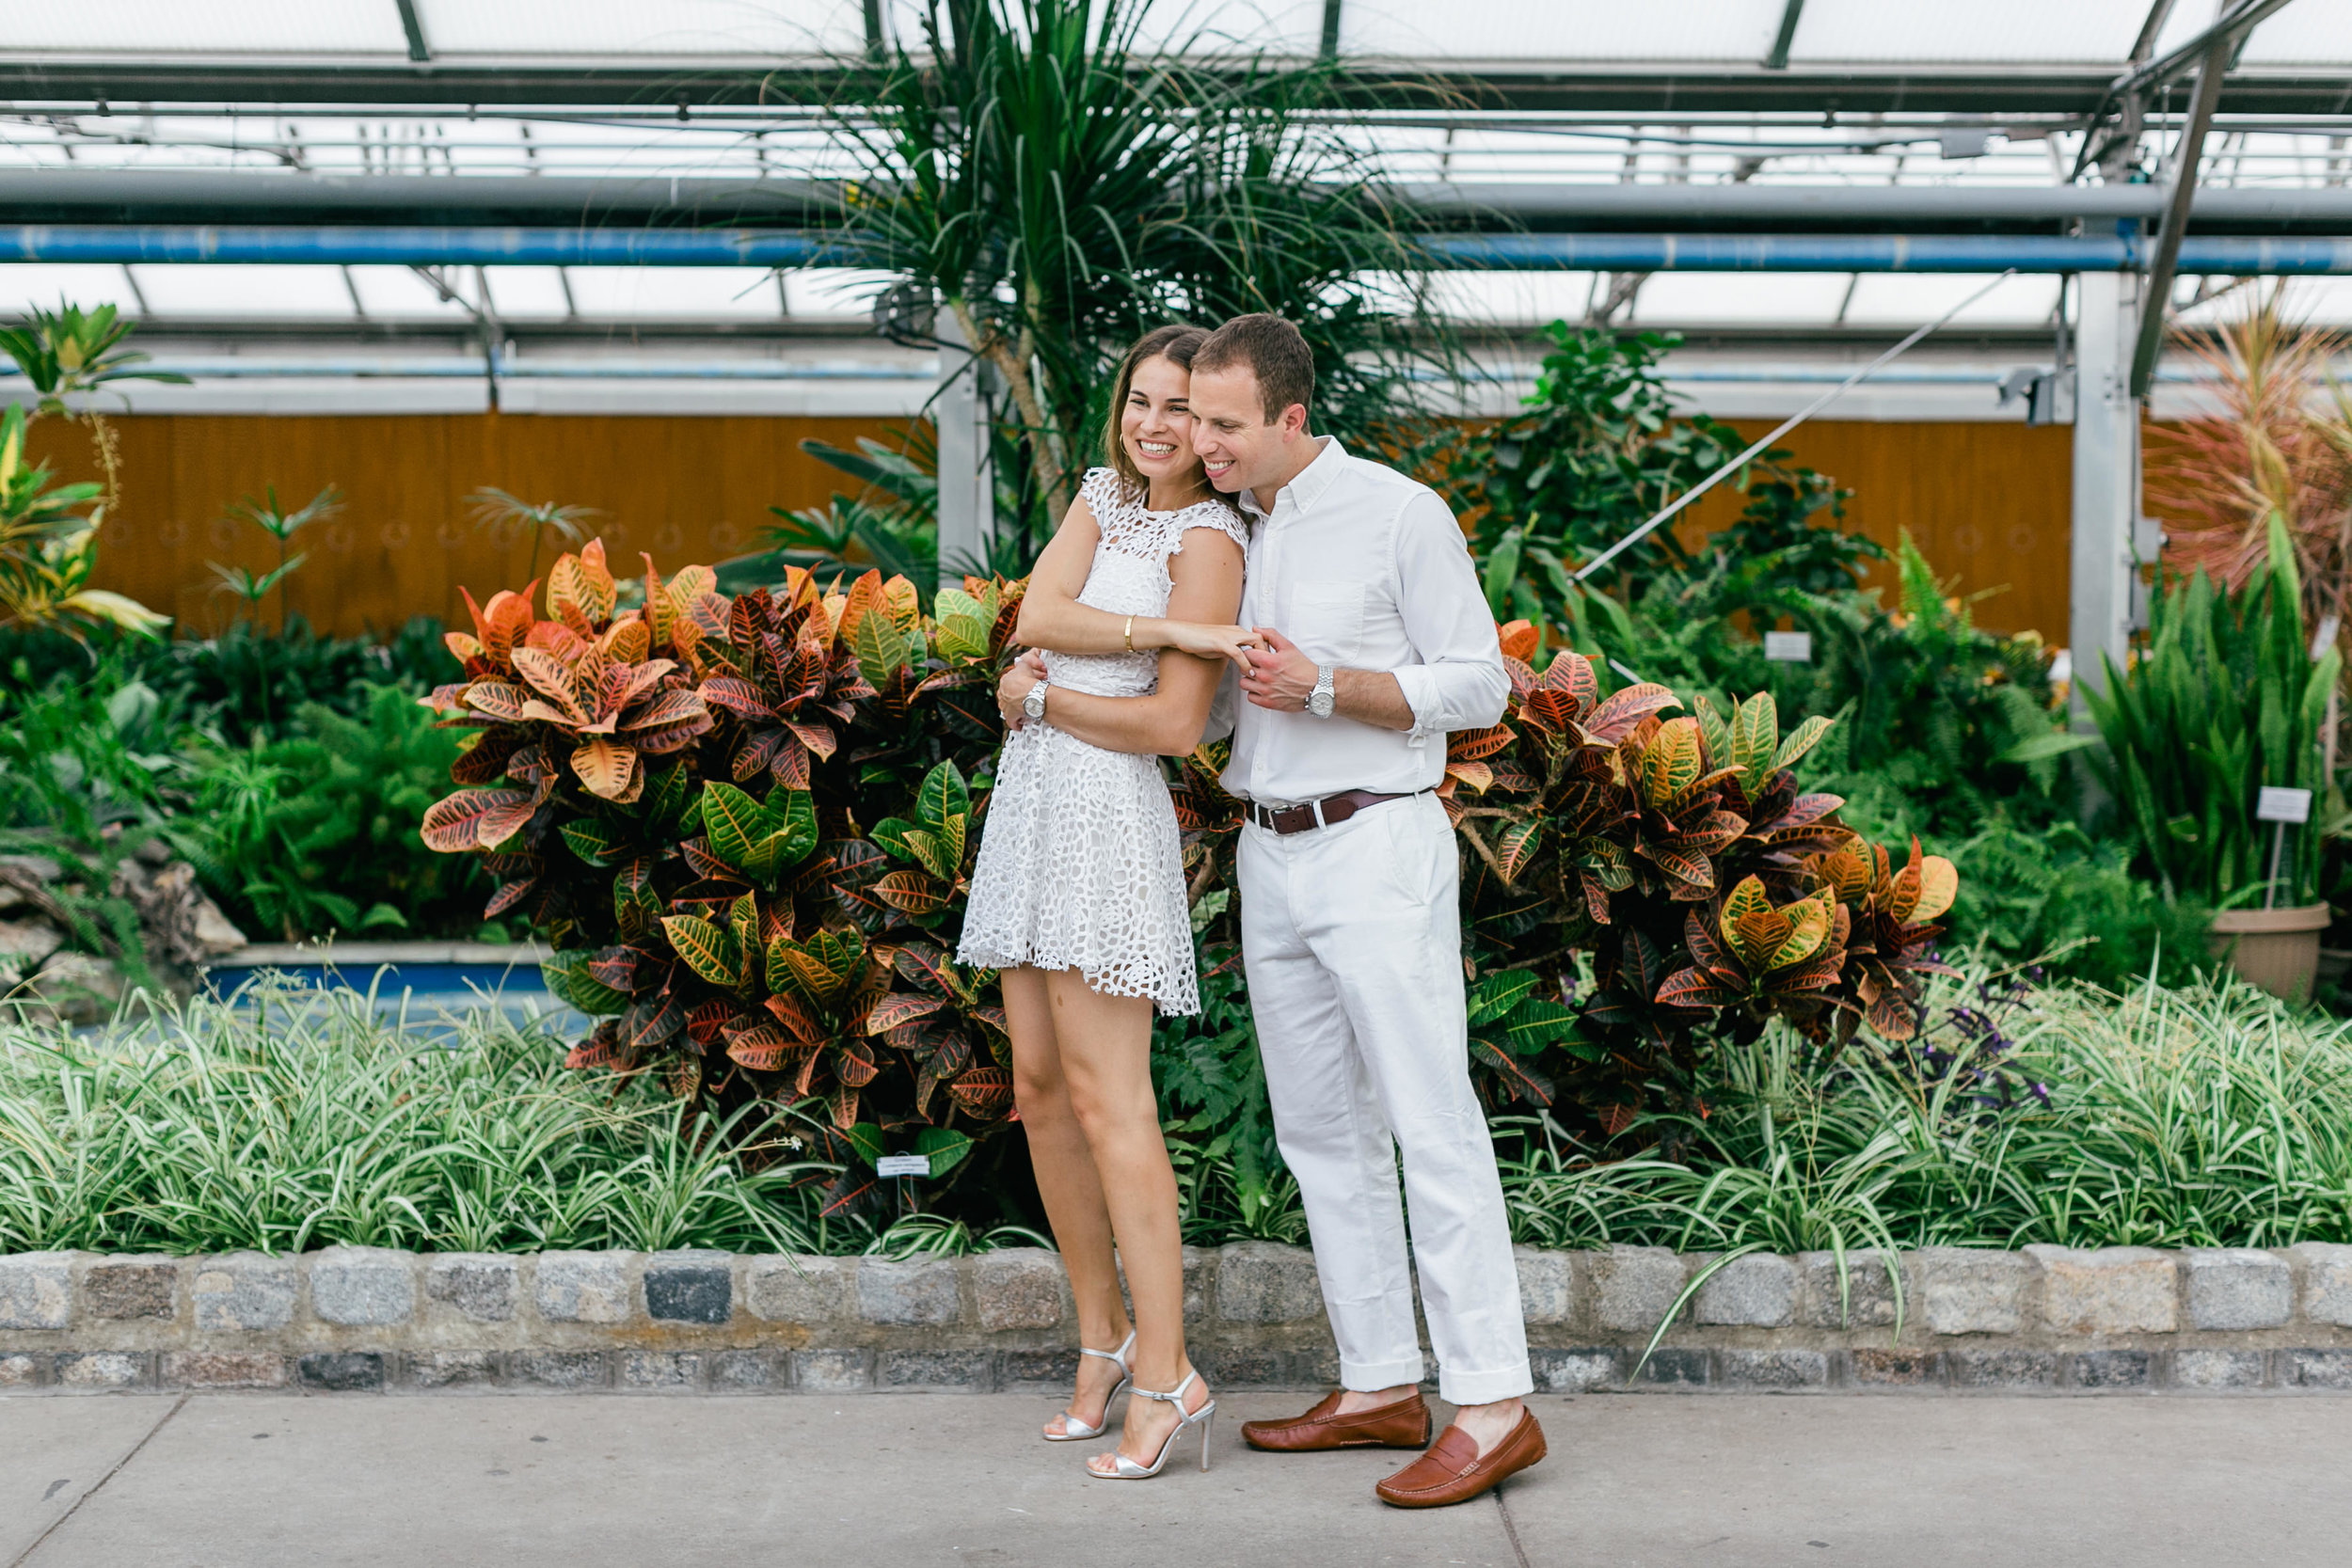 photography-family-natural-candid-engaged-fairmount-philadelphia-wedding-horticultural center-modern-lifestyle-26.JPG